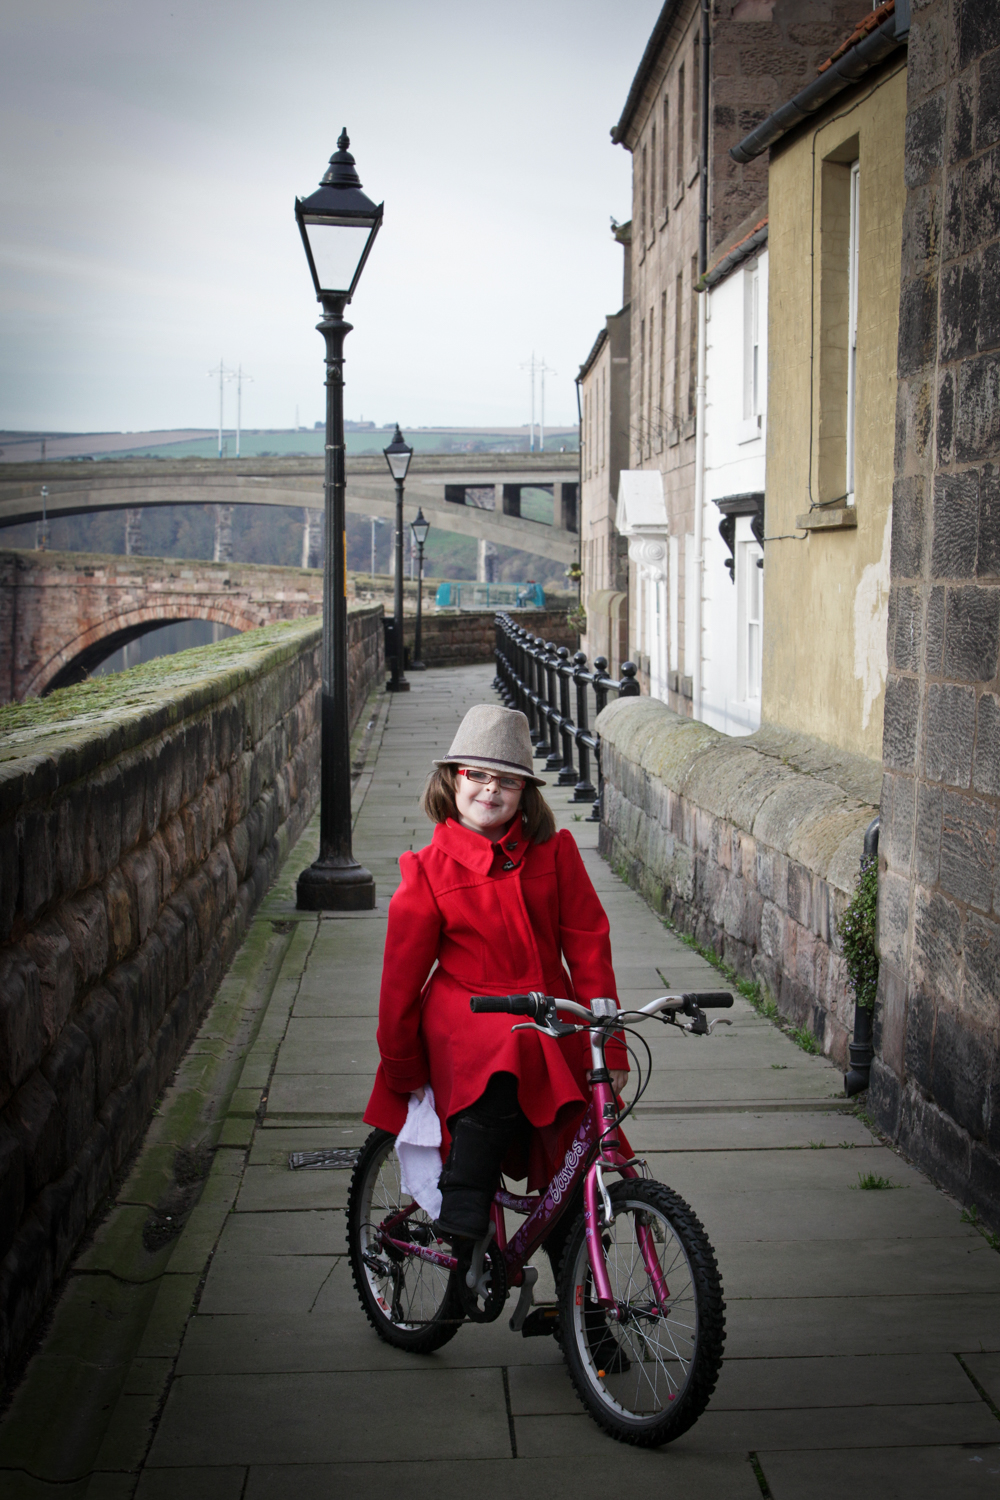 PICTORIAL_BERWICK_elizabethan-walls-bike-cyclist-portrait-child-2597.jpg